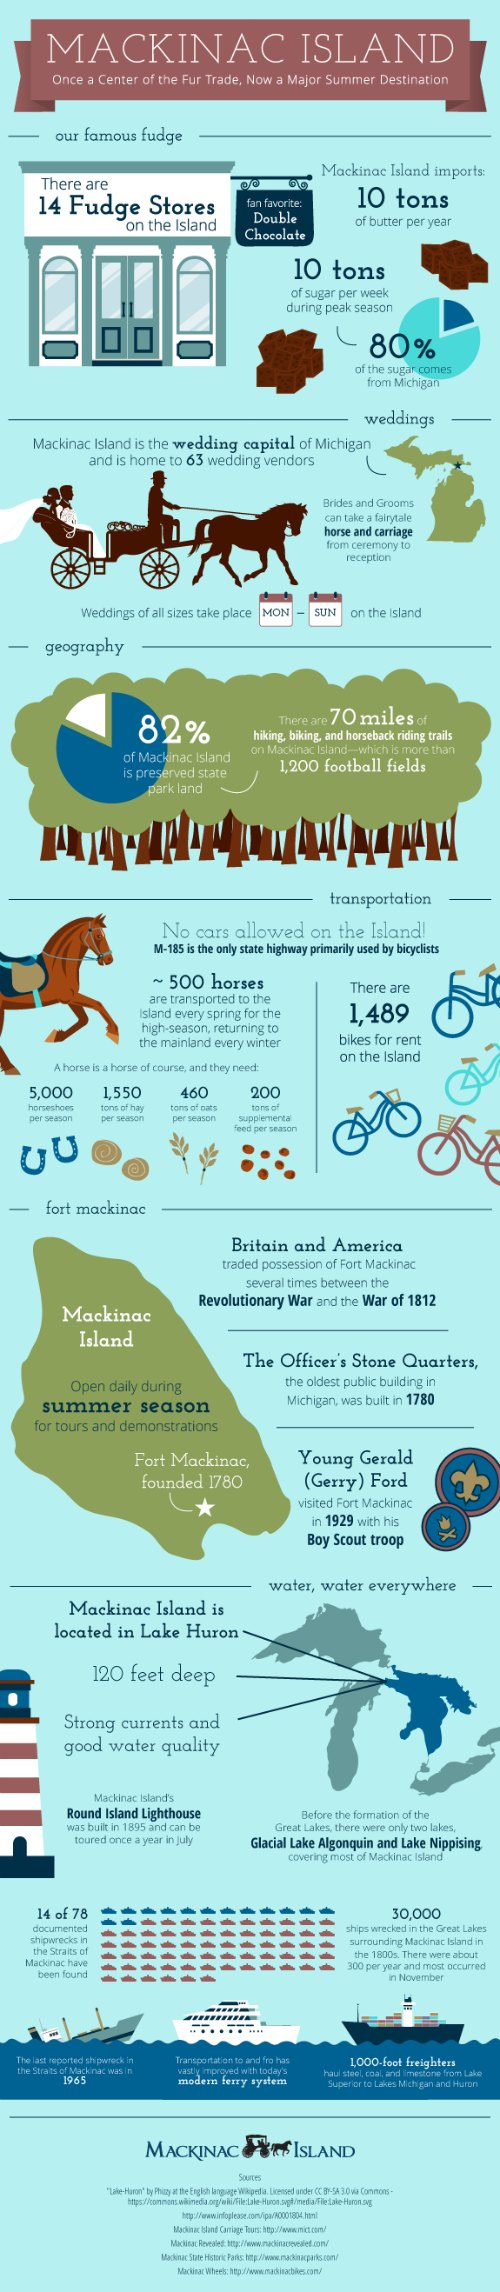 Mackinac Island FUN FACTS